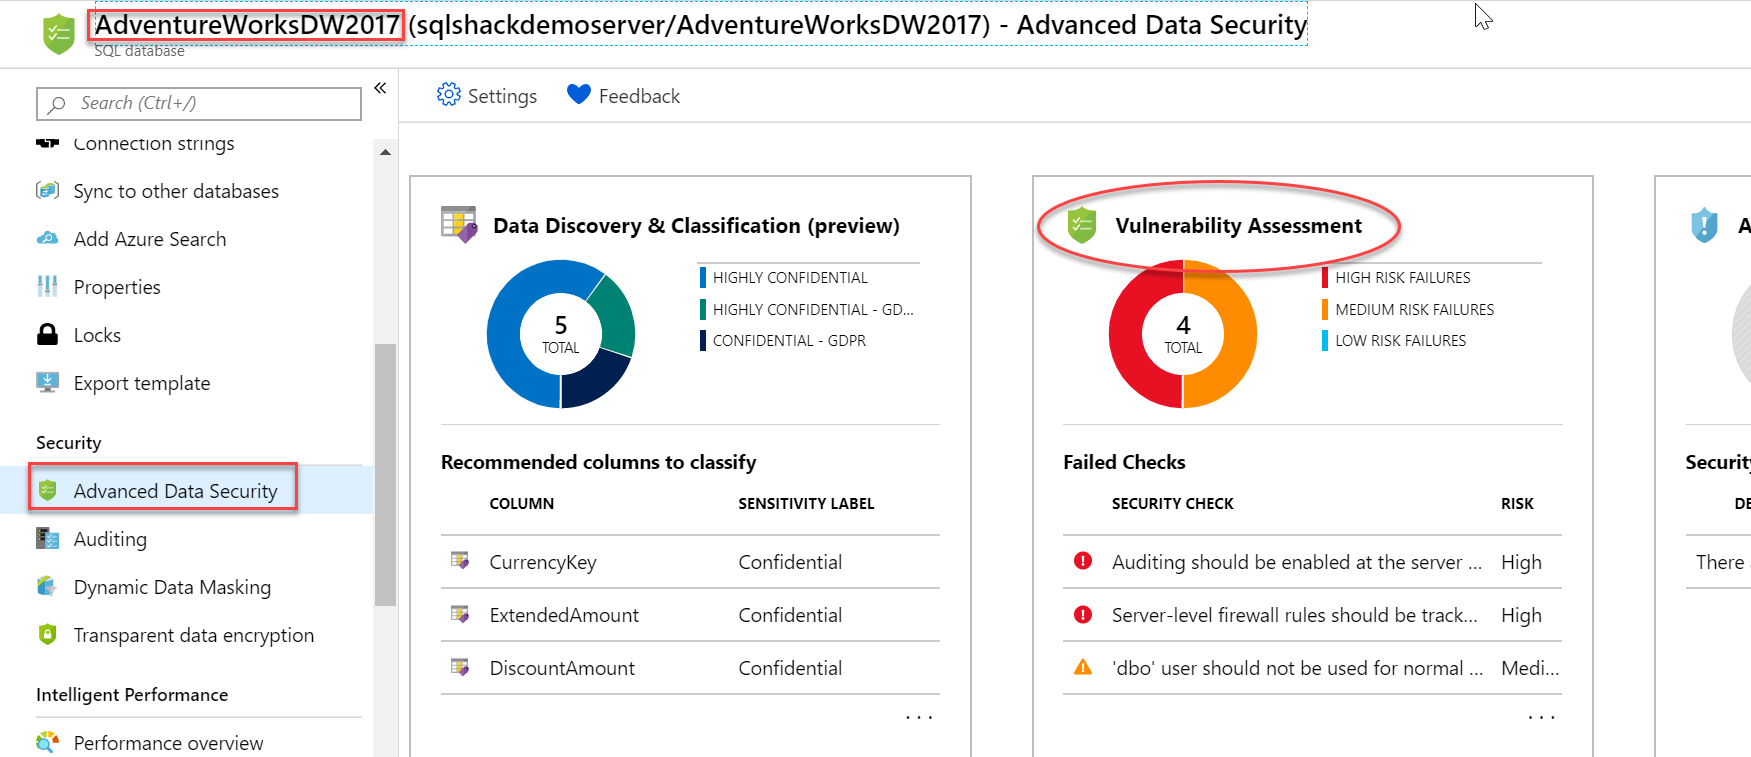 Open Vulnerability Assessment tile in Azure SQL Database.